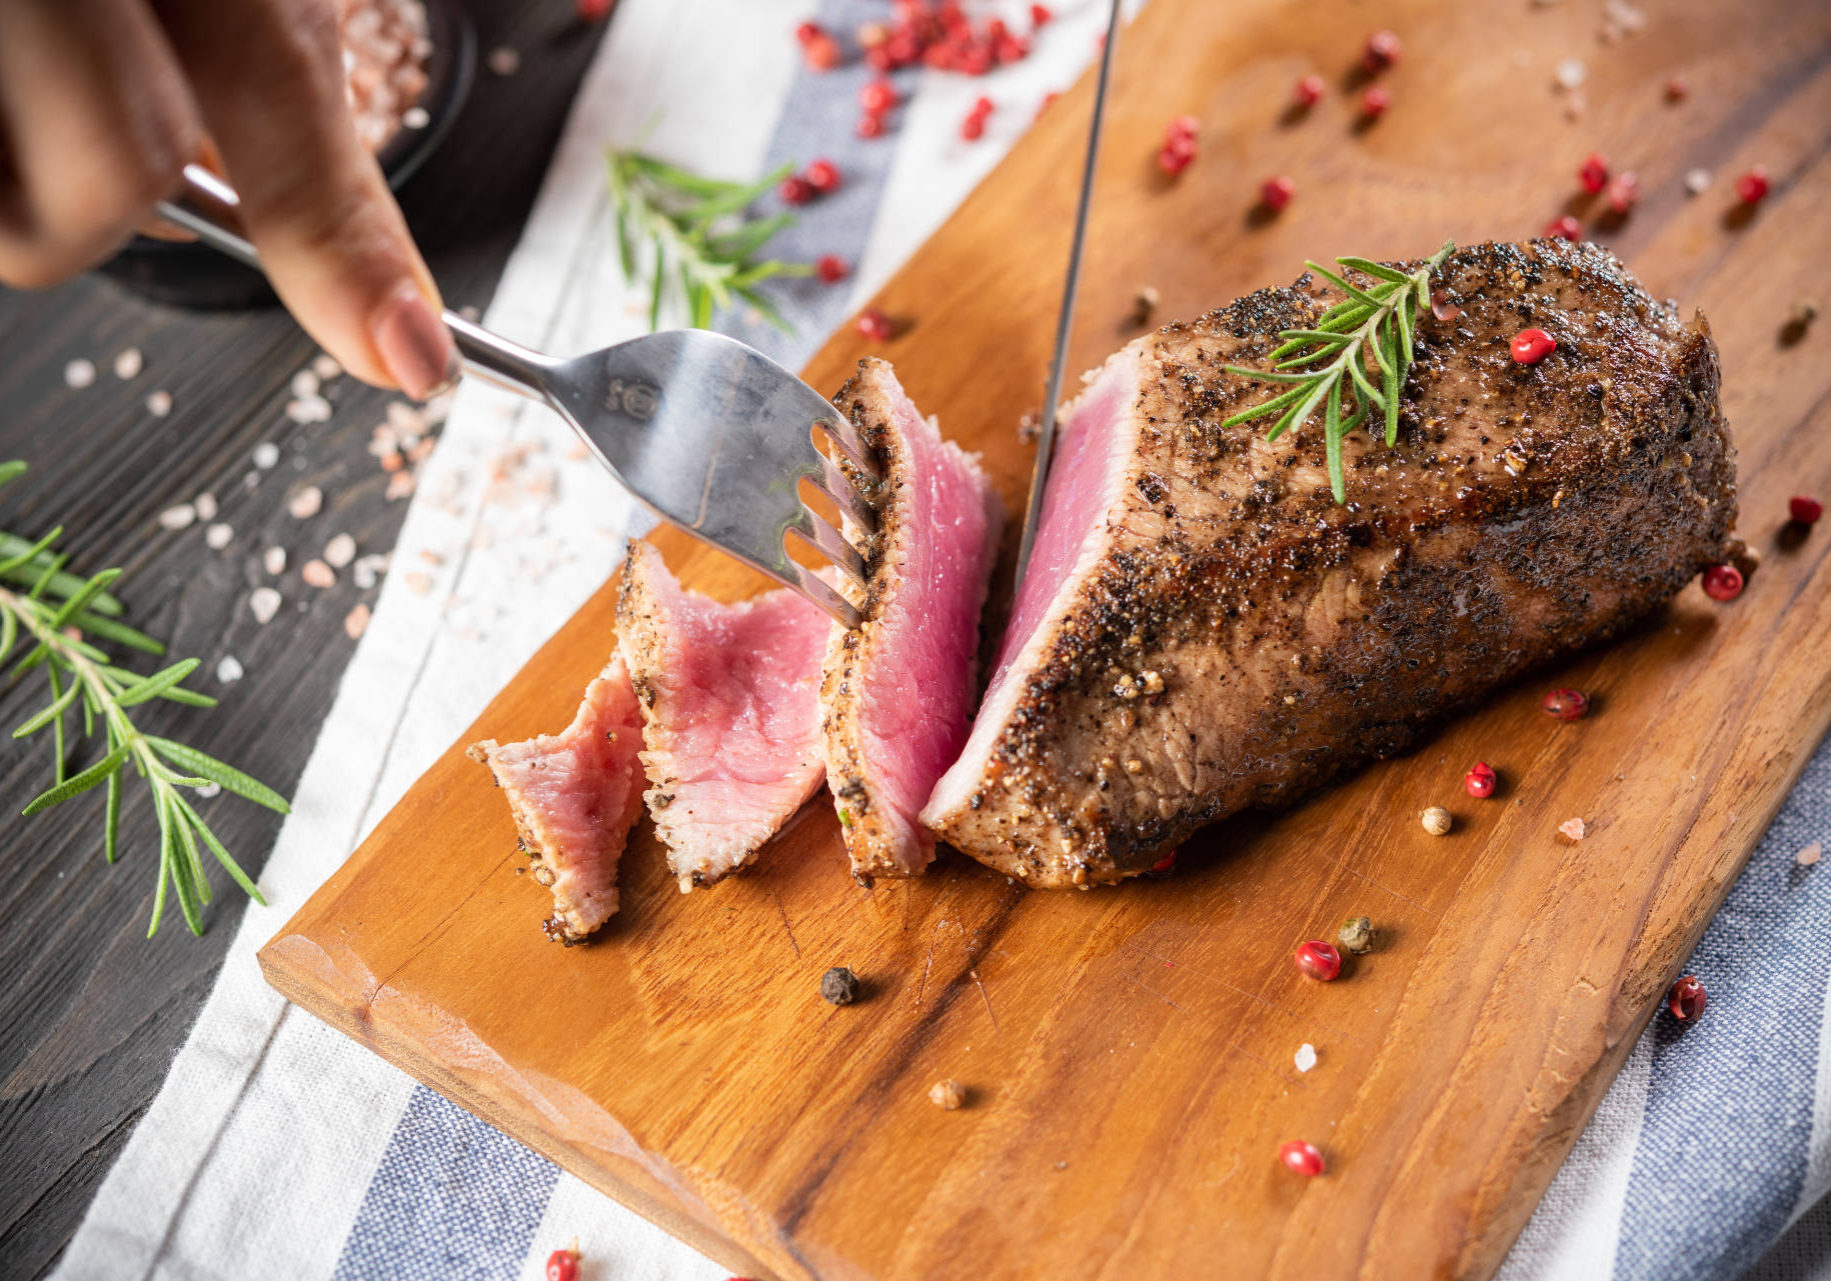 Full steak with black pepper cutted with a knife and fork on a chopping board with many rosemary leaves and spices, medium rare, red meat, gray-white napkin background. Good food make to good health